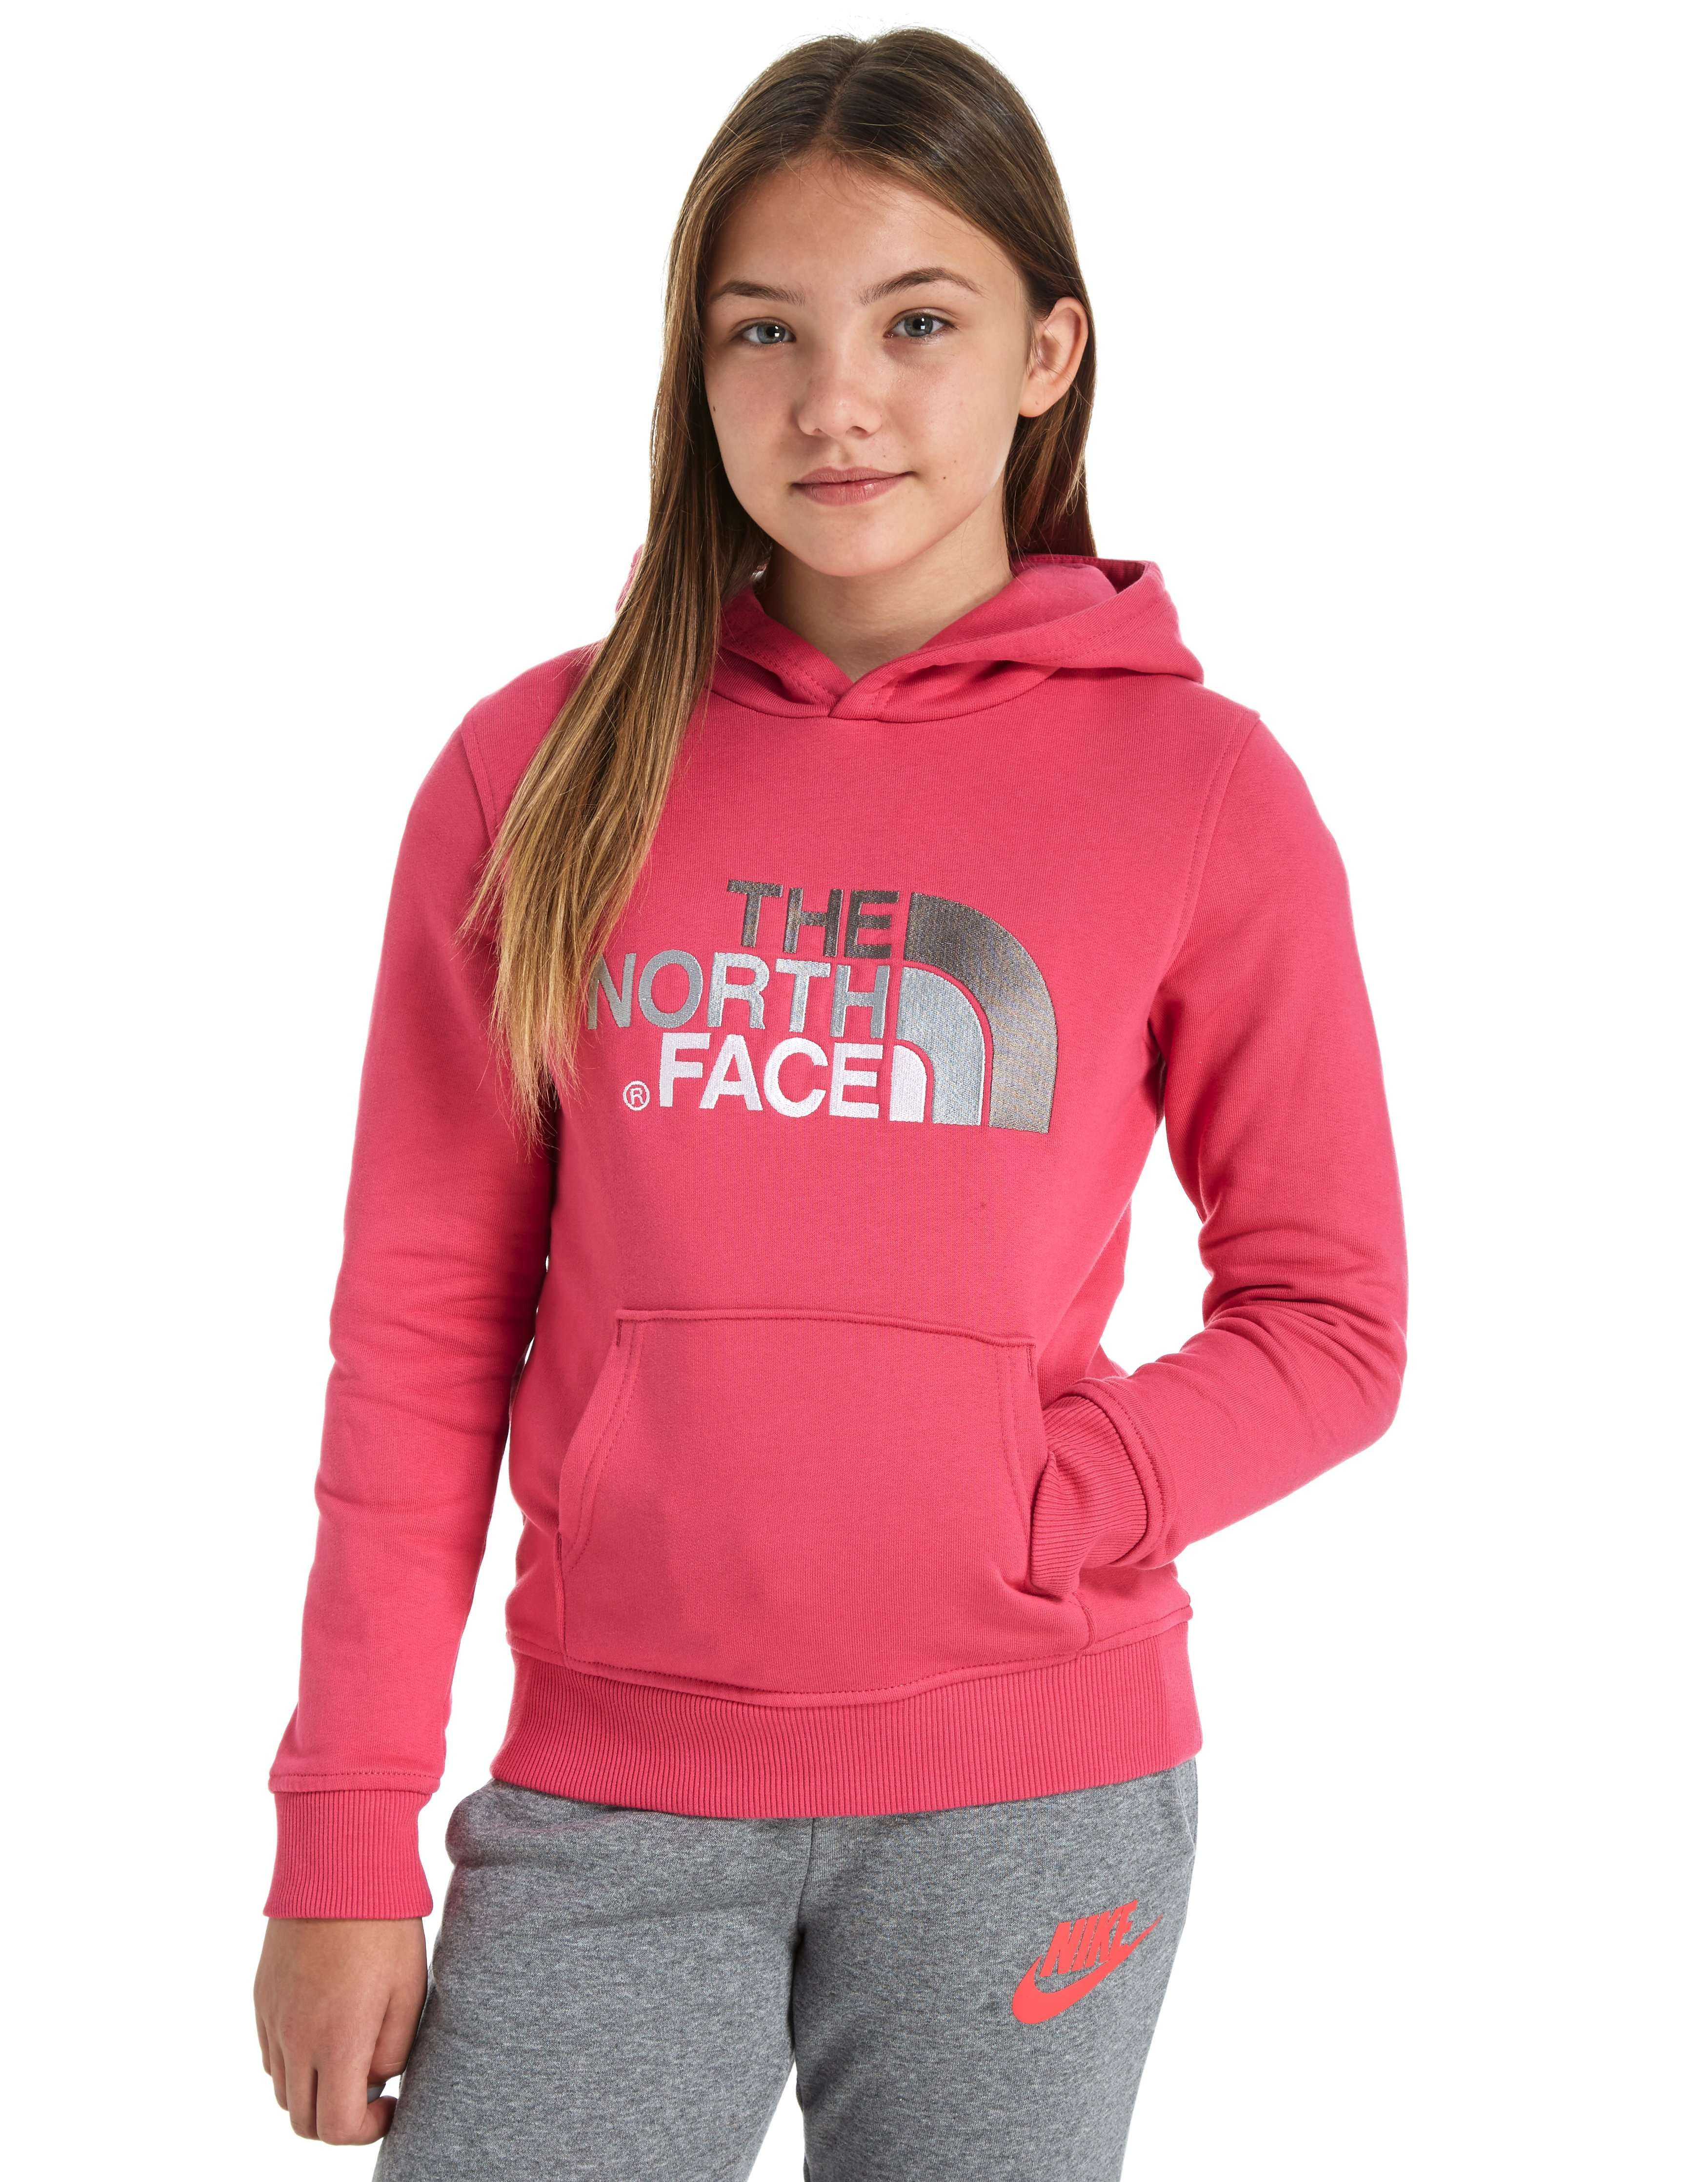 942b3d921 The North Face Girls  Drew Peak Hoodie Junior - Shop online for The ...